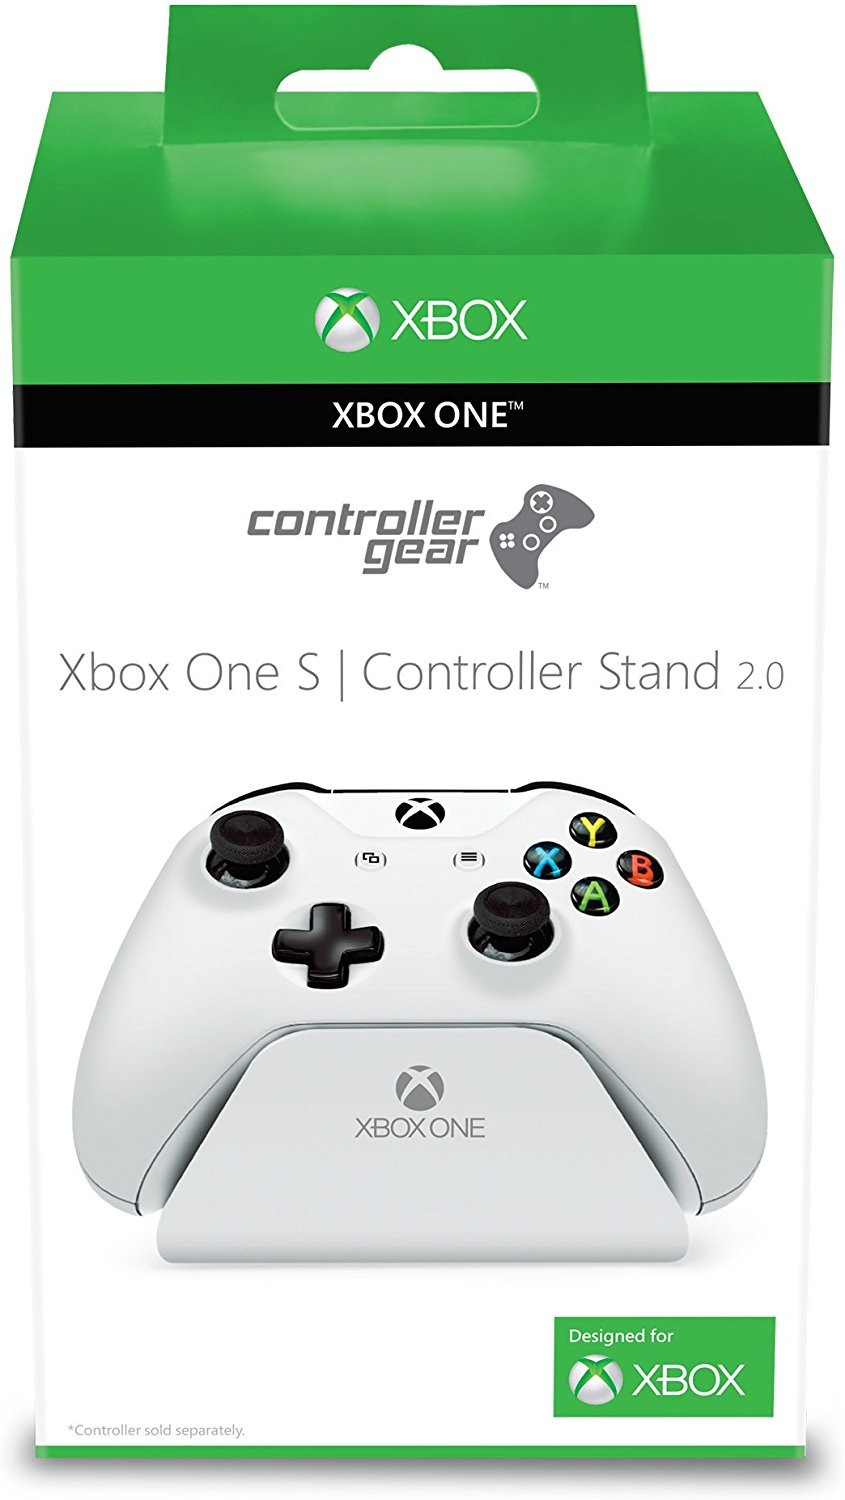 Xbox One White Controller Stand v2.0 - Officially Licensed By Xbox - Controller Gear